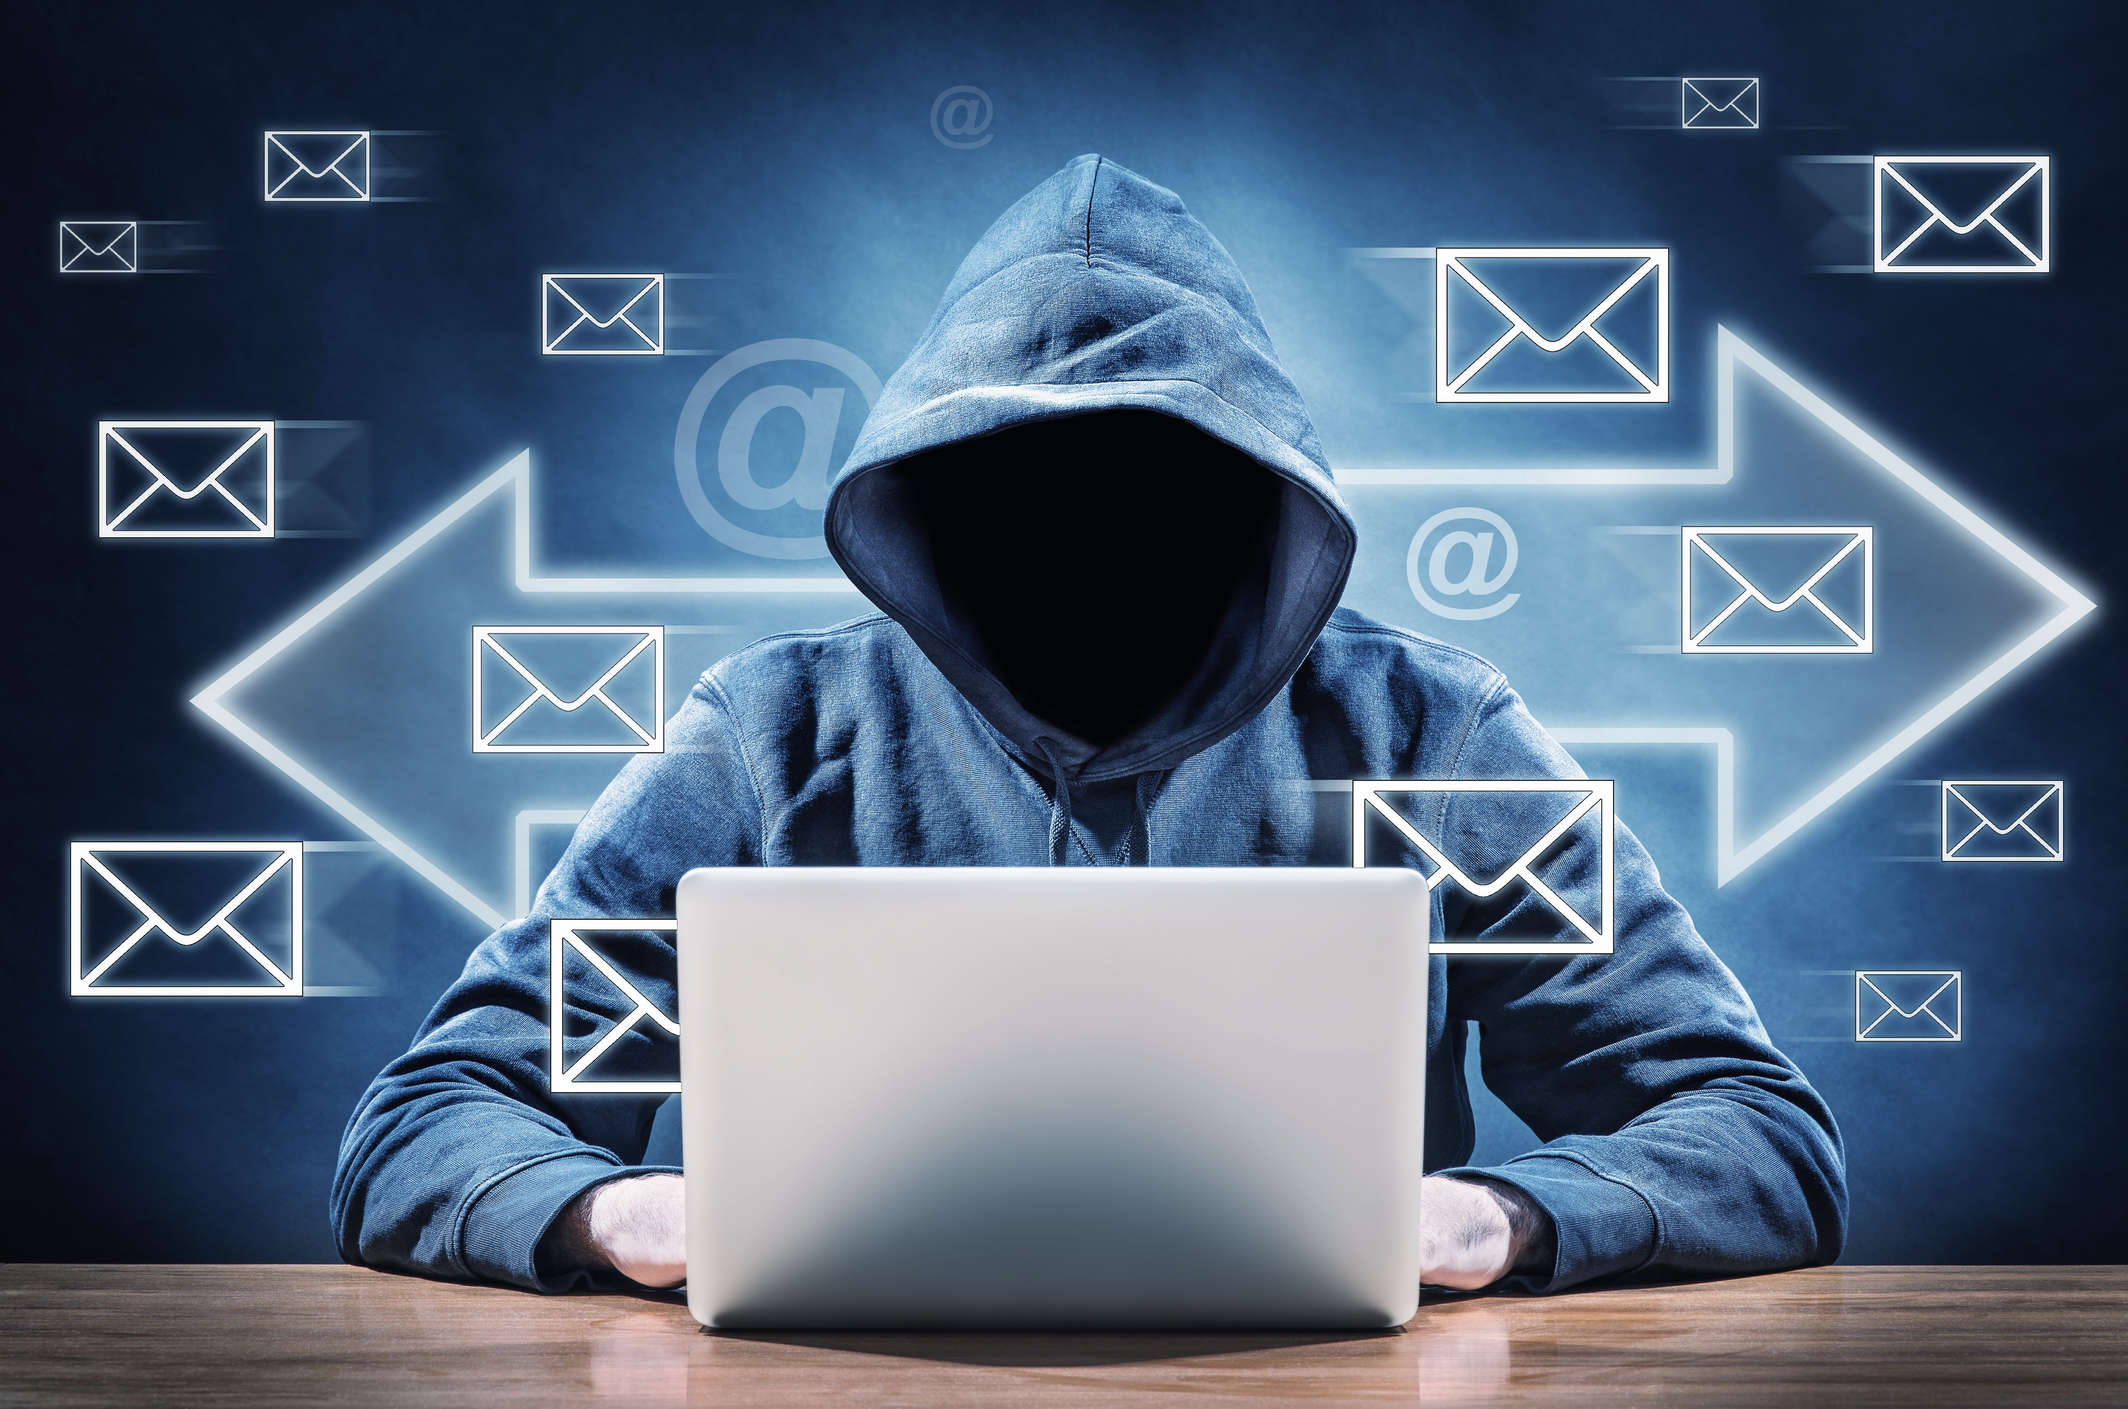 A deluge of attacks has included phishing emails purported to be from health agencies, counterfeit product offers and bogus charity donation requests, according to security analysts.